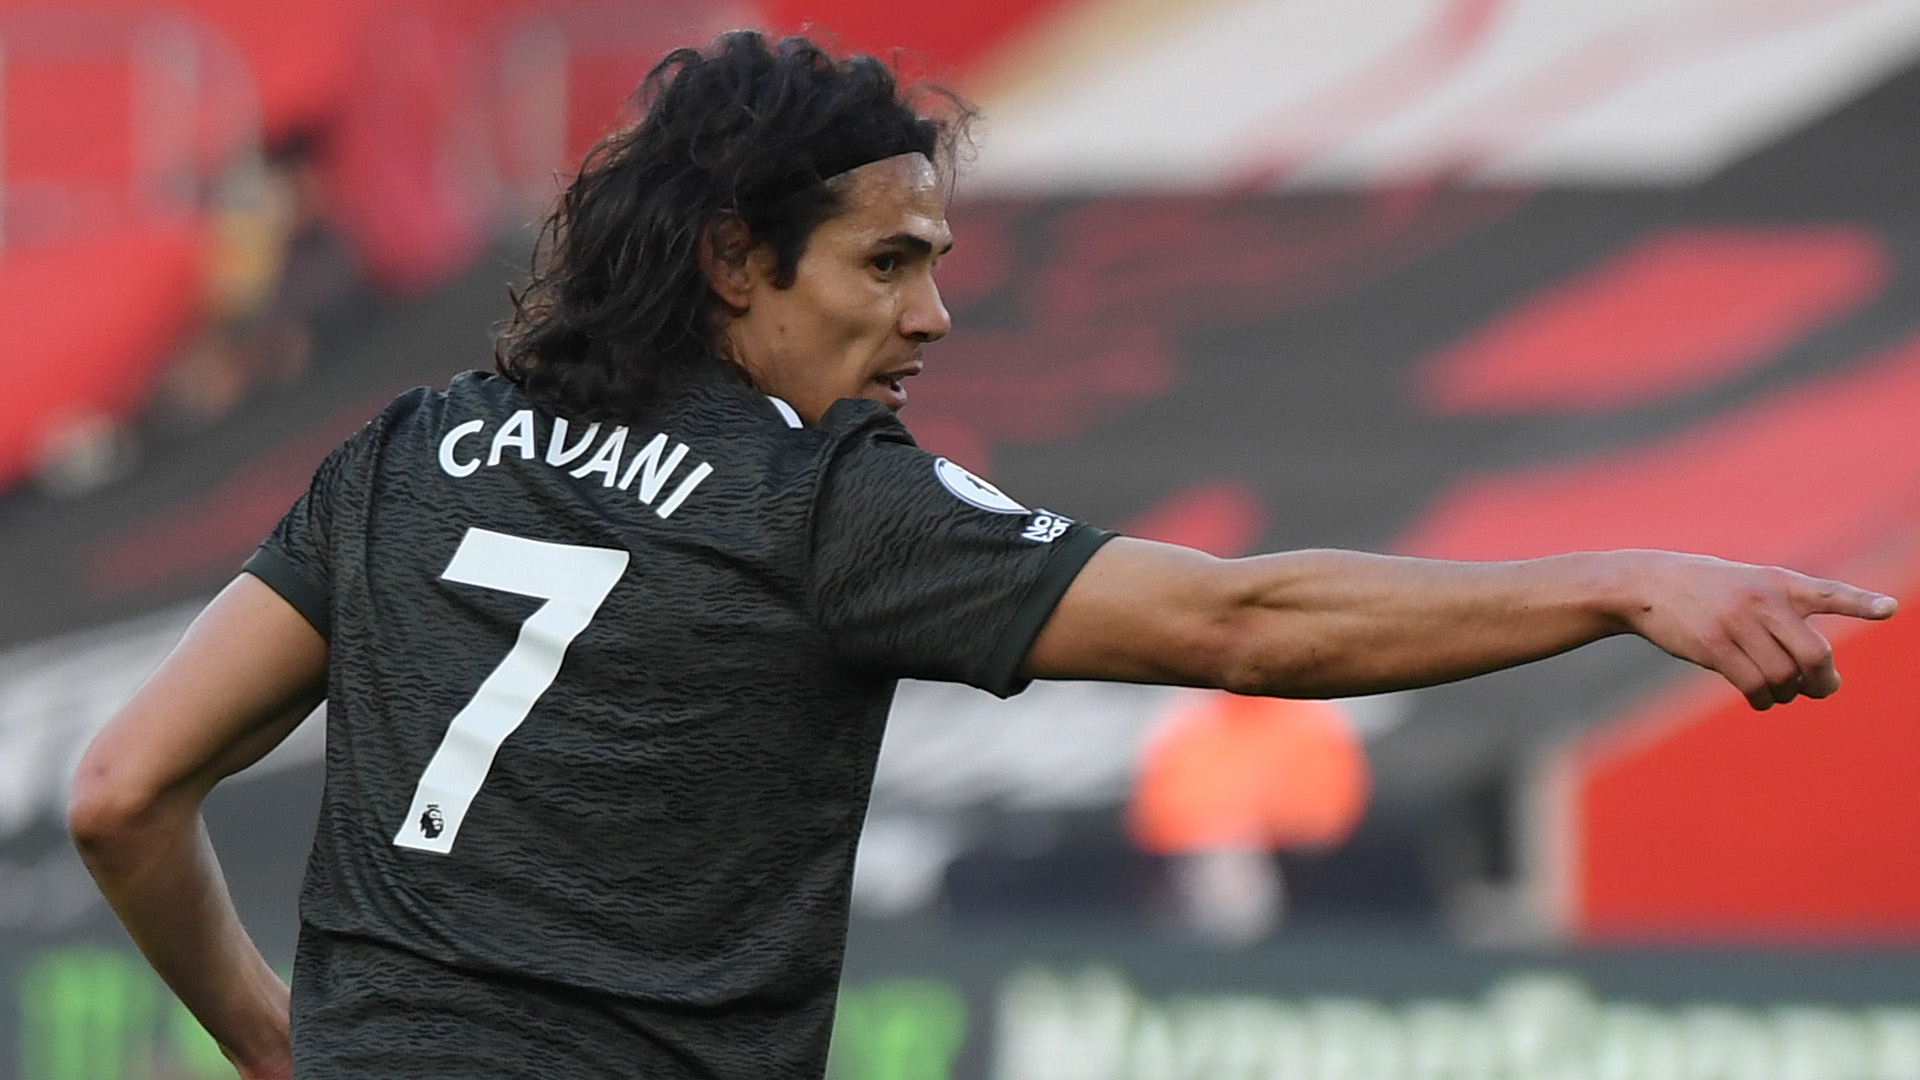 'He's learnt the hard way' - Solskjaer welcomes FA investigation into Cavani Instagram post